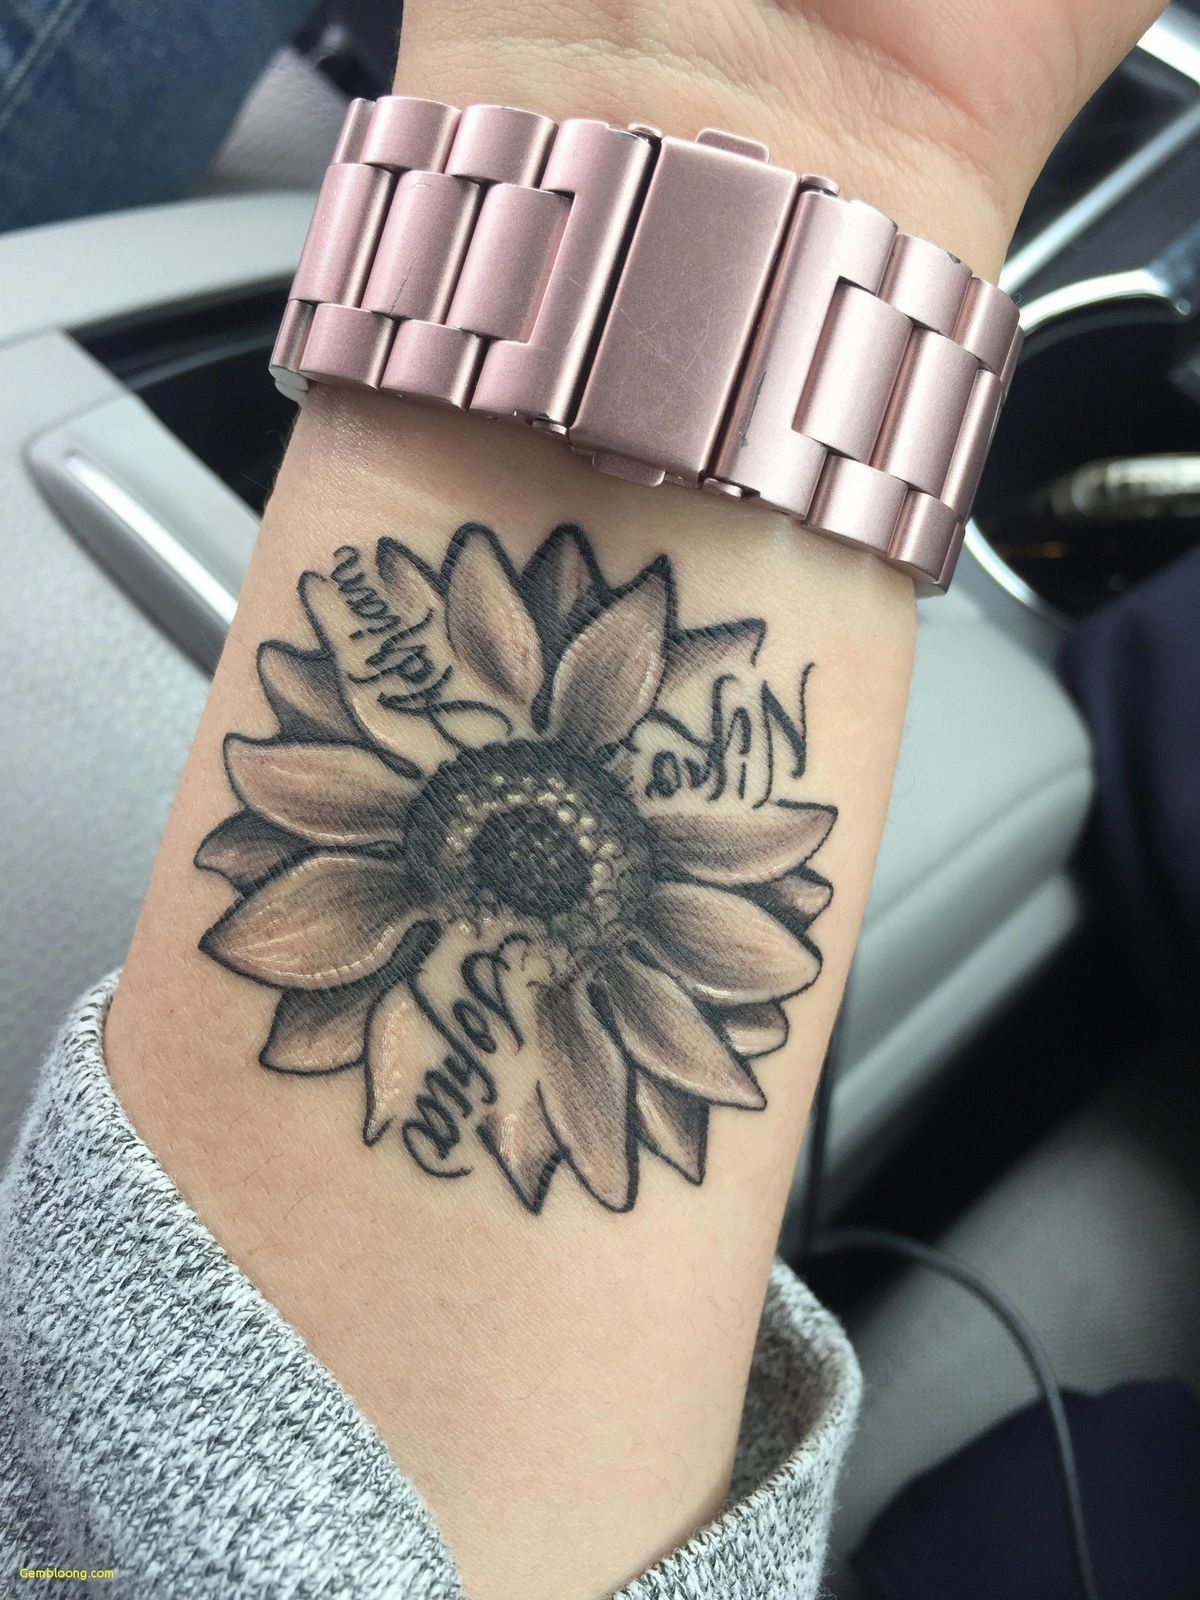 This With My Girls Name In It Tattoos For Kids Beautiful Small